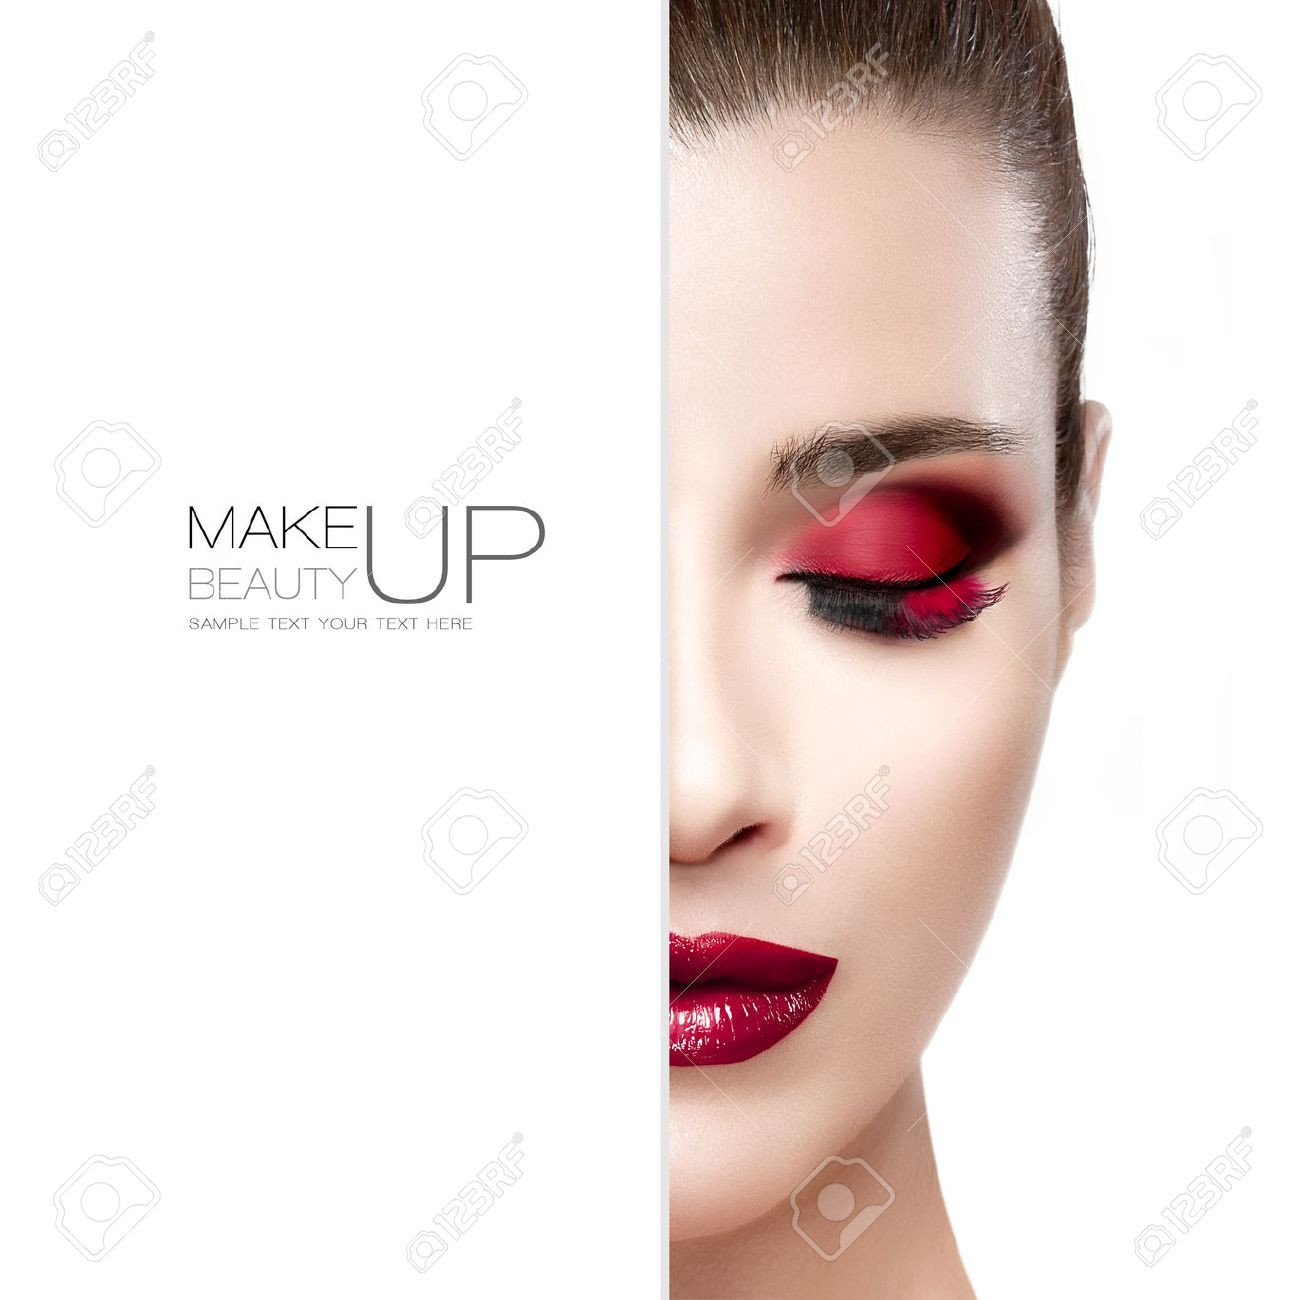 Beauty and Makeup concept with half face of a beautiful young woman with eyes closed. Perfect skin. Trendy burgundy lips and smoky eyes. Fashionable eyelashes. High fashion portrait isolated on white with sample text - 45414634